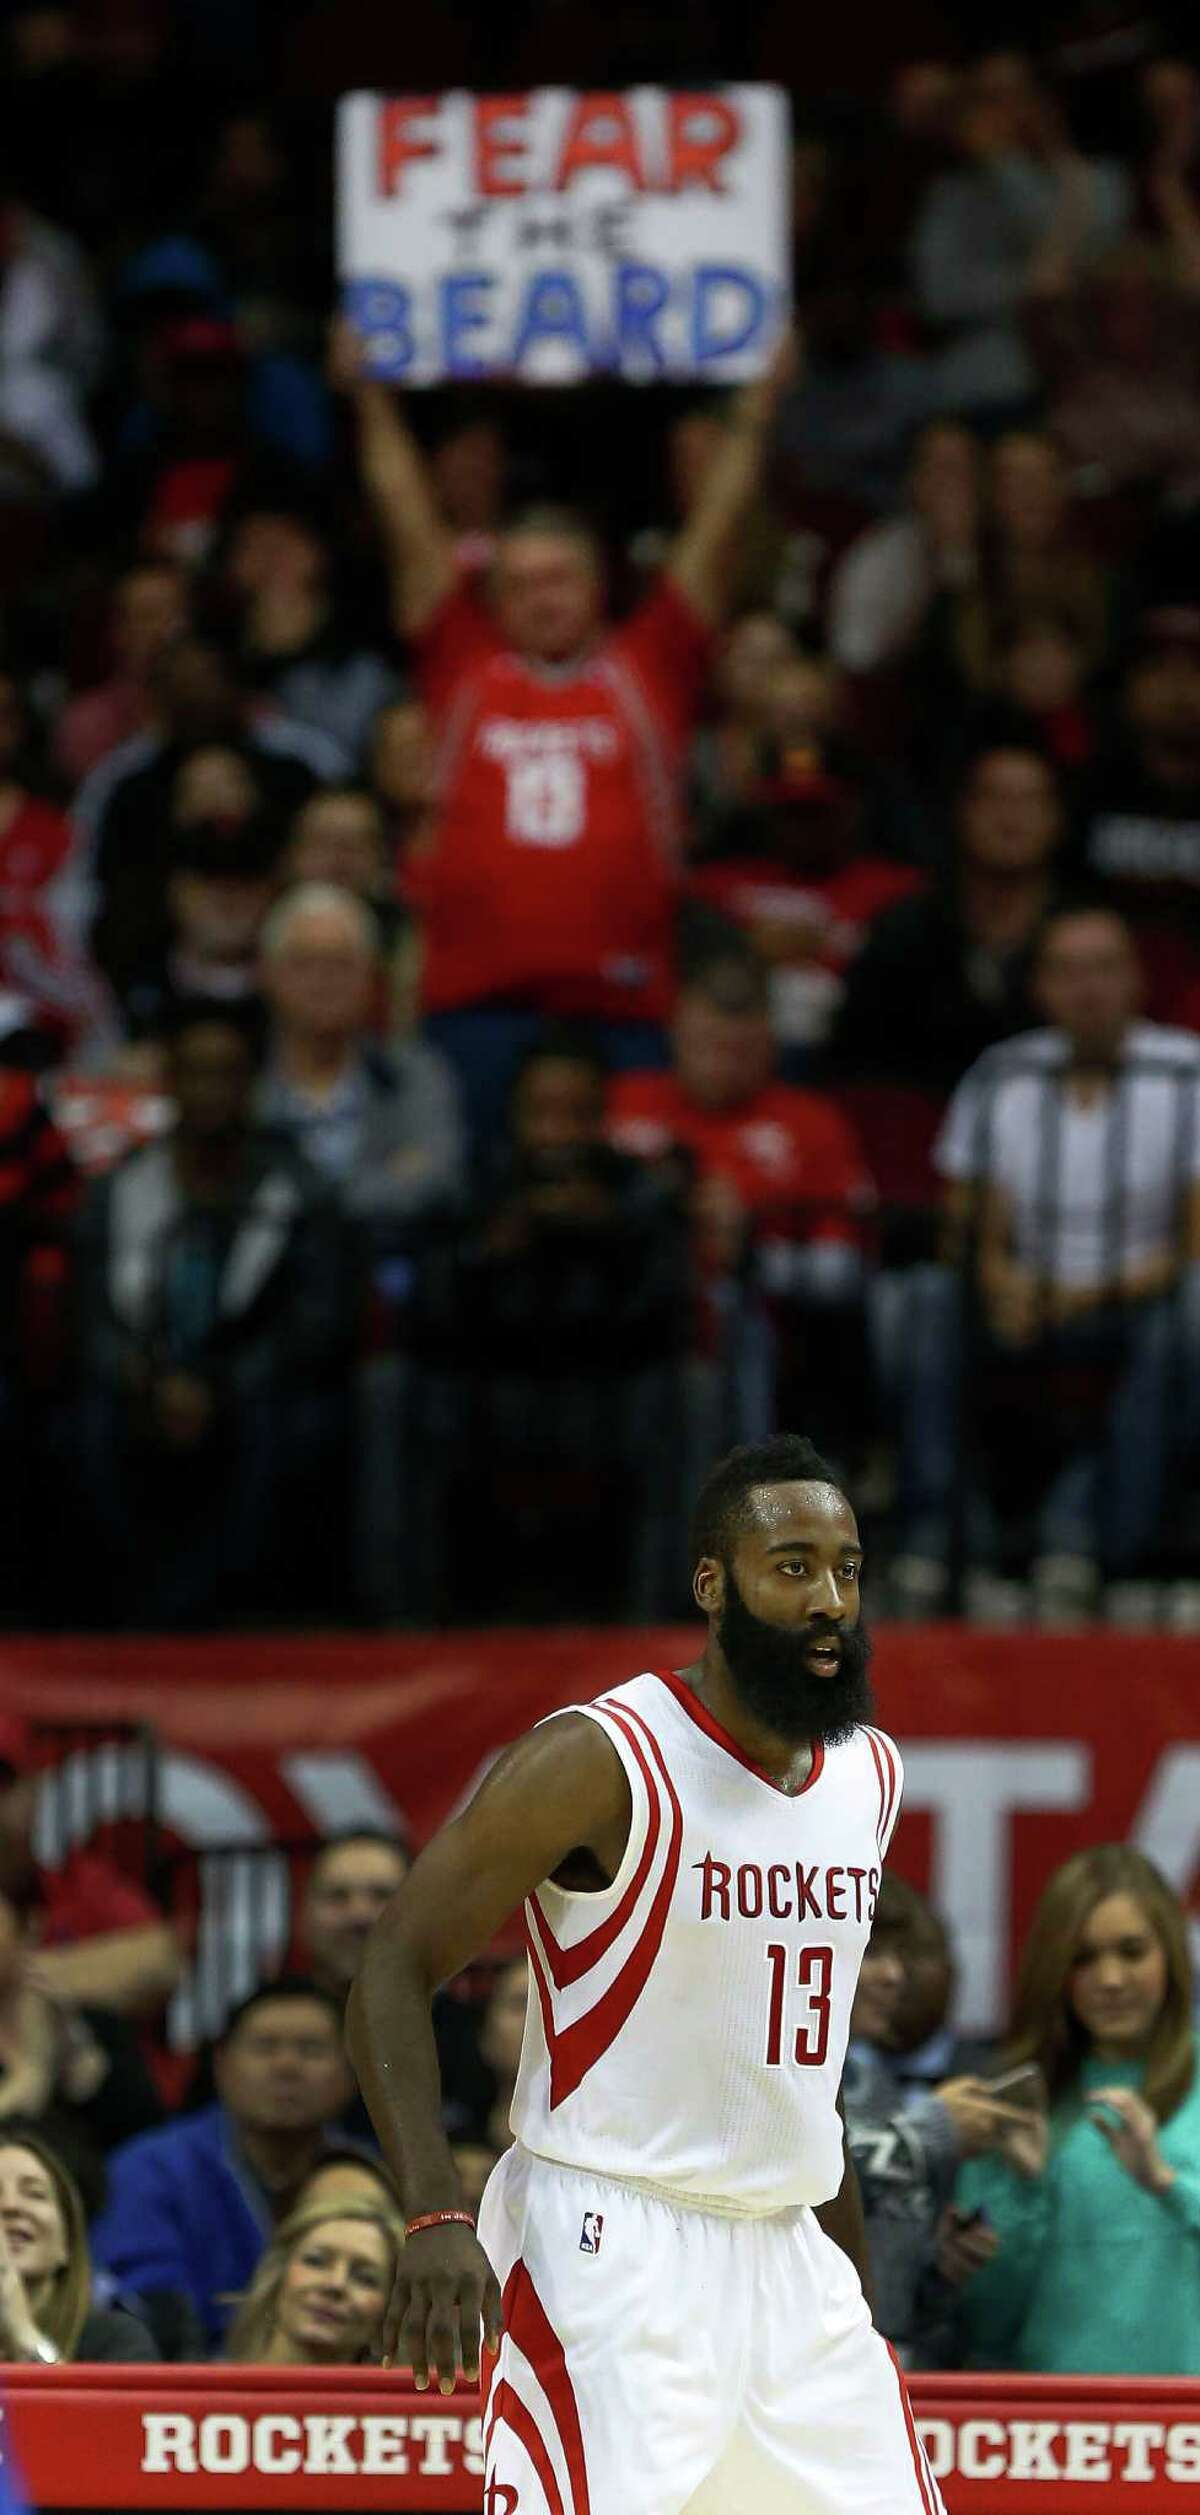 """A Houston Rockets fan flashes a """"Fear the Beard"""" sign after one of hi three-pointers during the second half of an NBA basketball game at Toyota Center, Monday, Nov. 24, 2014, in Houston. ( Karen Warren / Houston Chronicle )"""